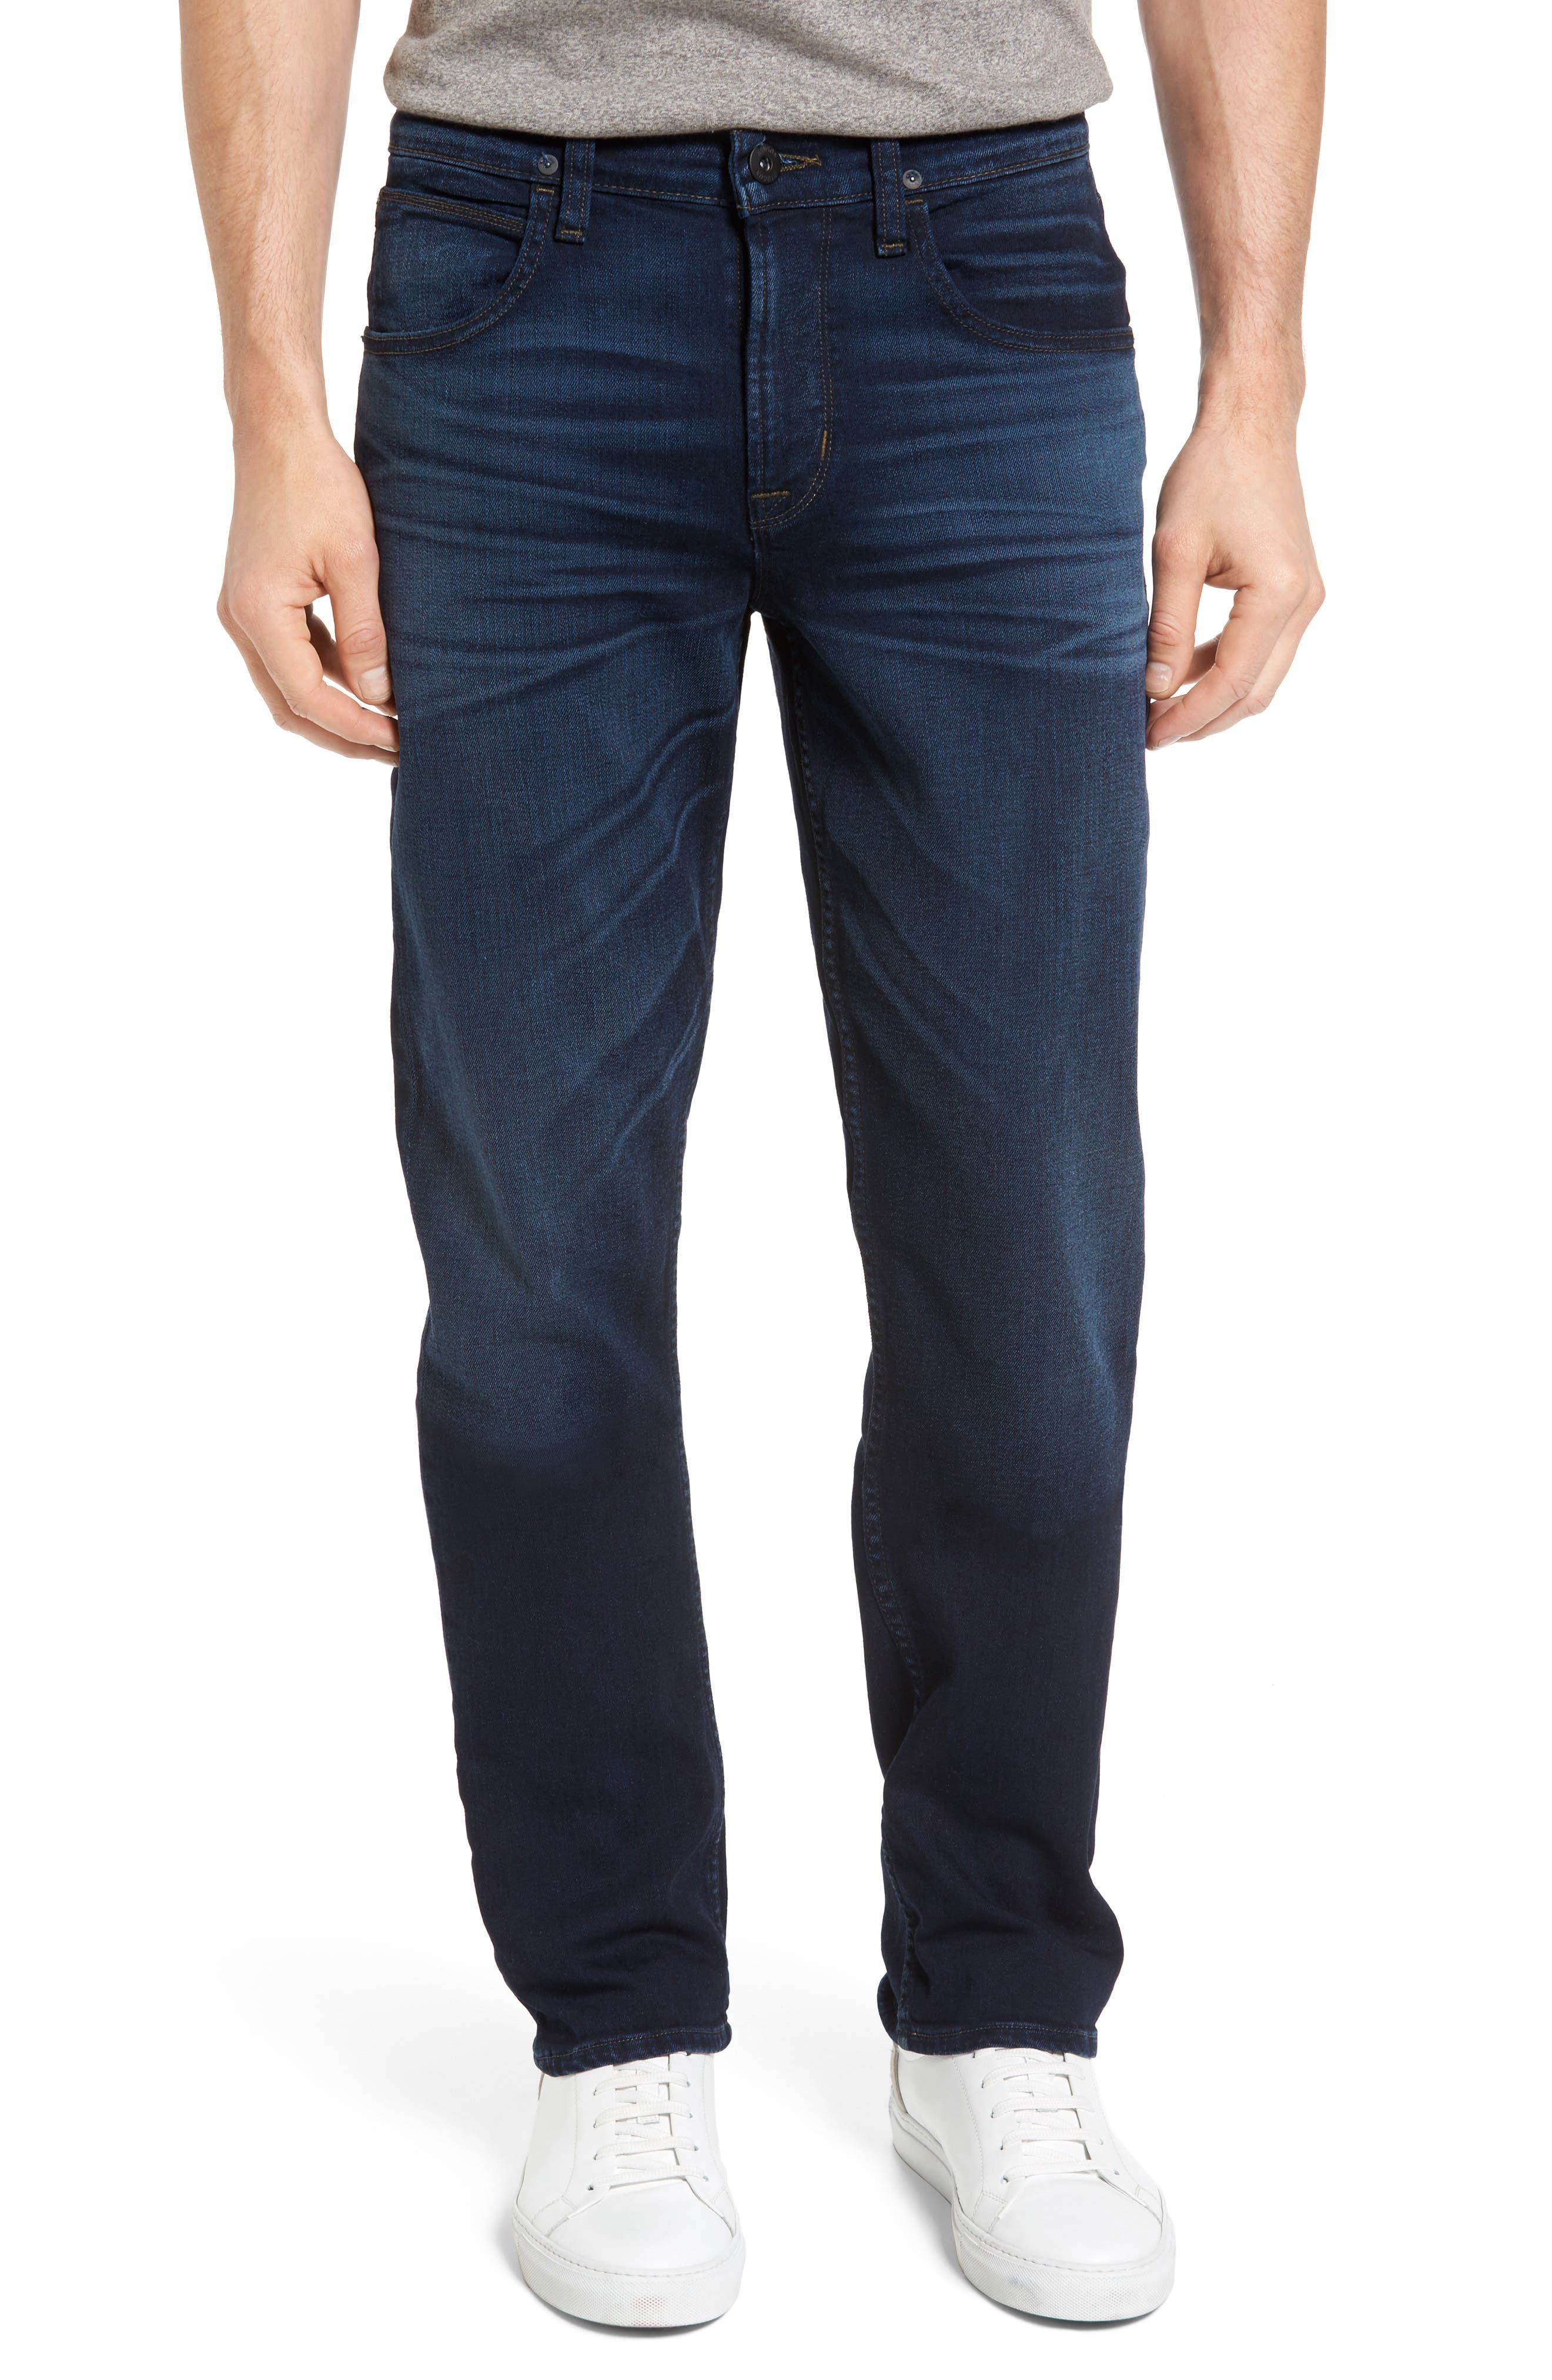 Alternate Image 1 Selected - Hudson Jeans Byron Slim Straight Leg Jeans (Streetwise)